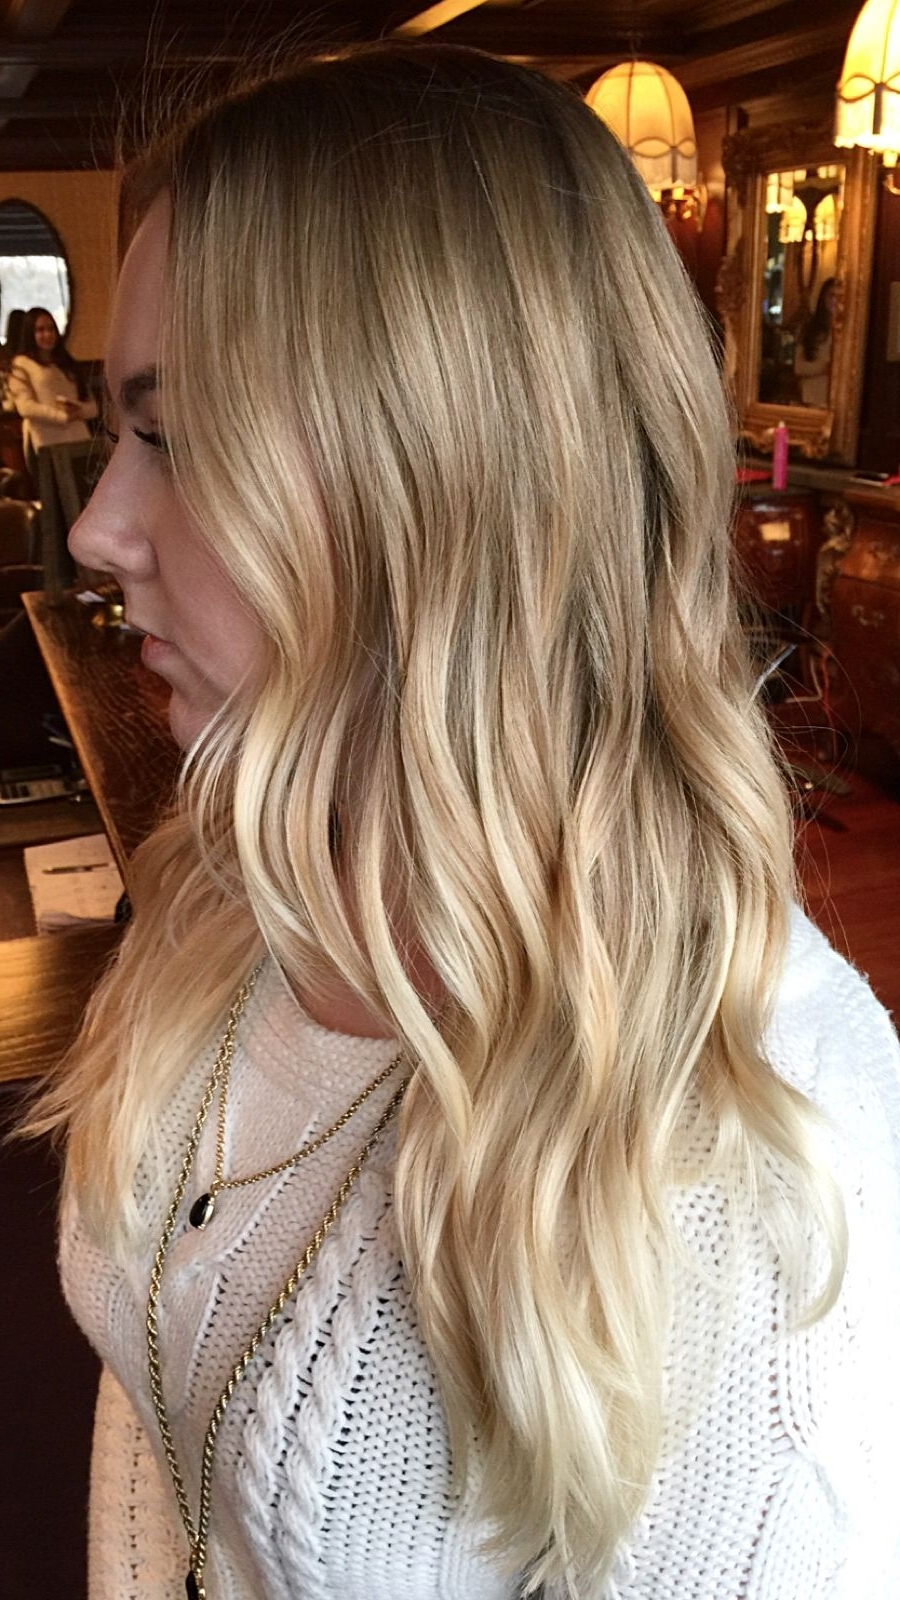 Pale With Regard To Current Pale Blonde Balayage Hairstyles (View 13 of 20)